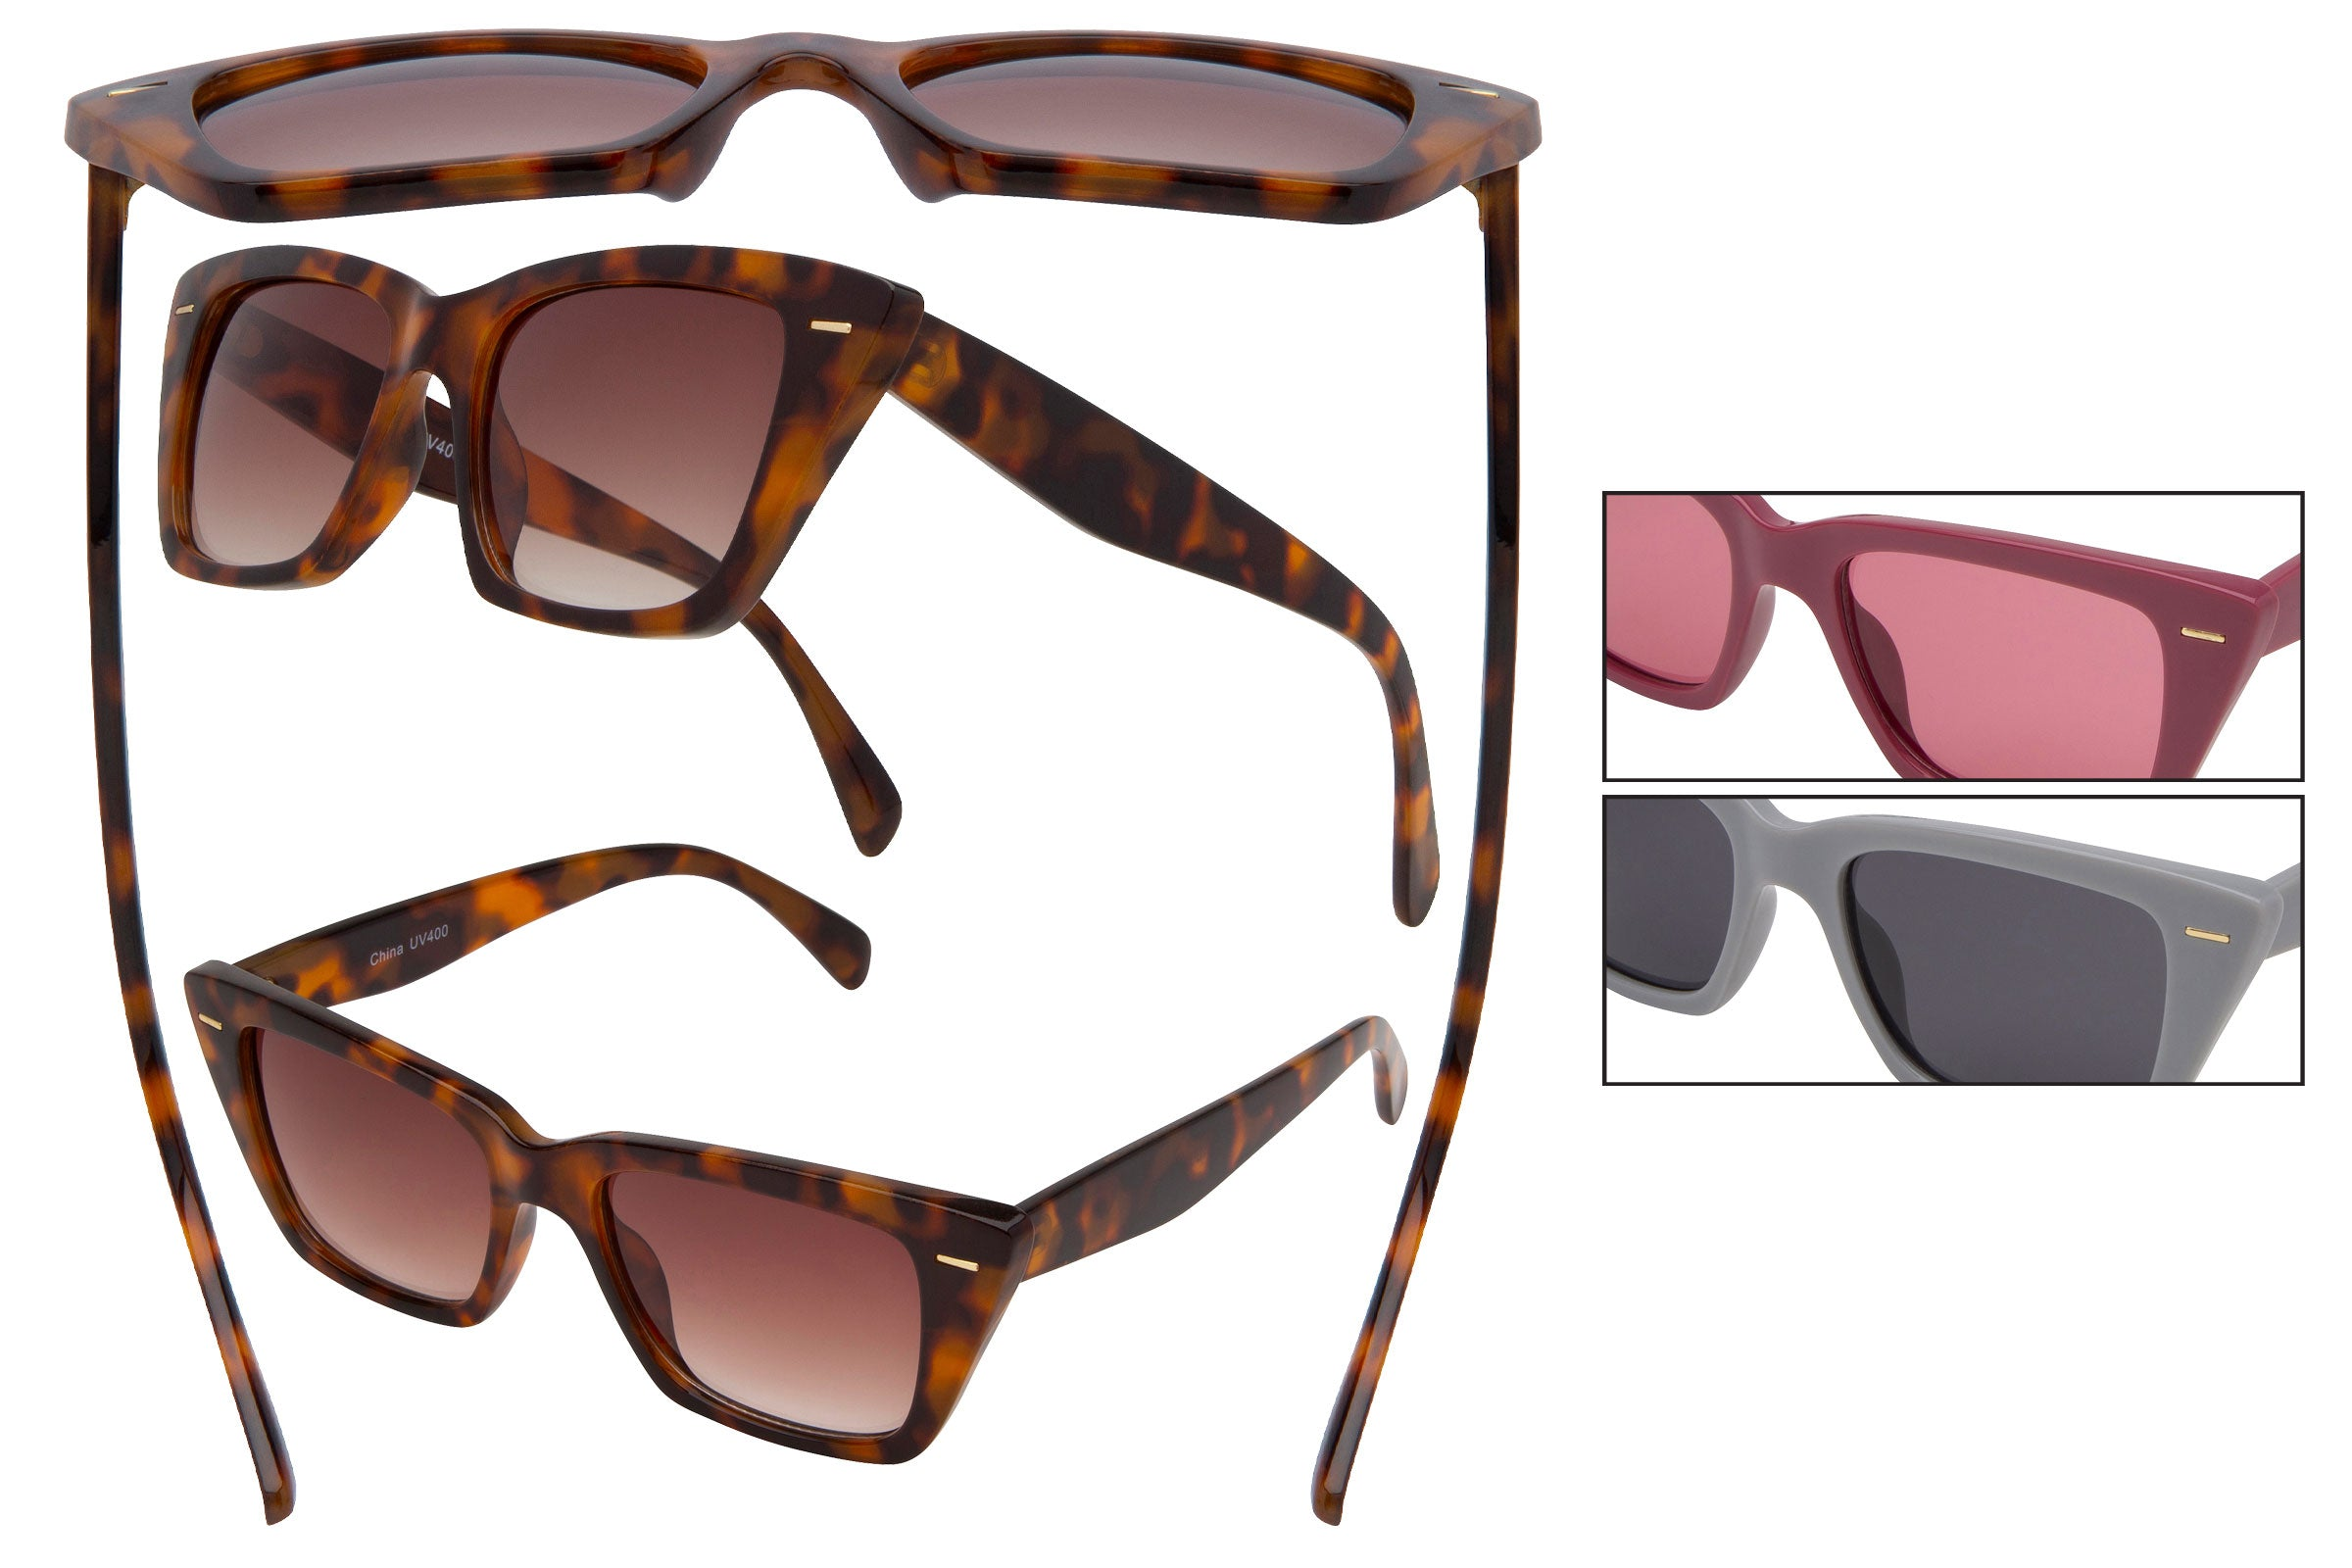 66180 - Vox Women's Fashion Sunglasses